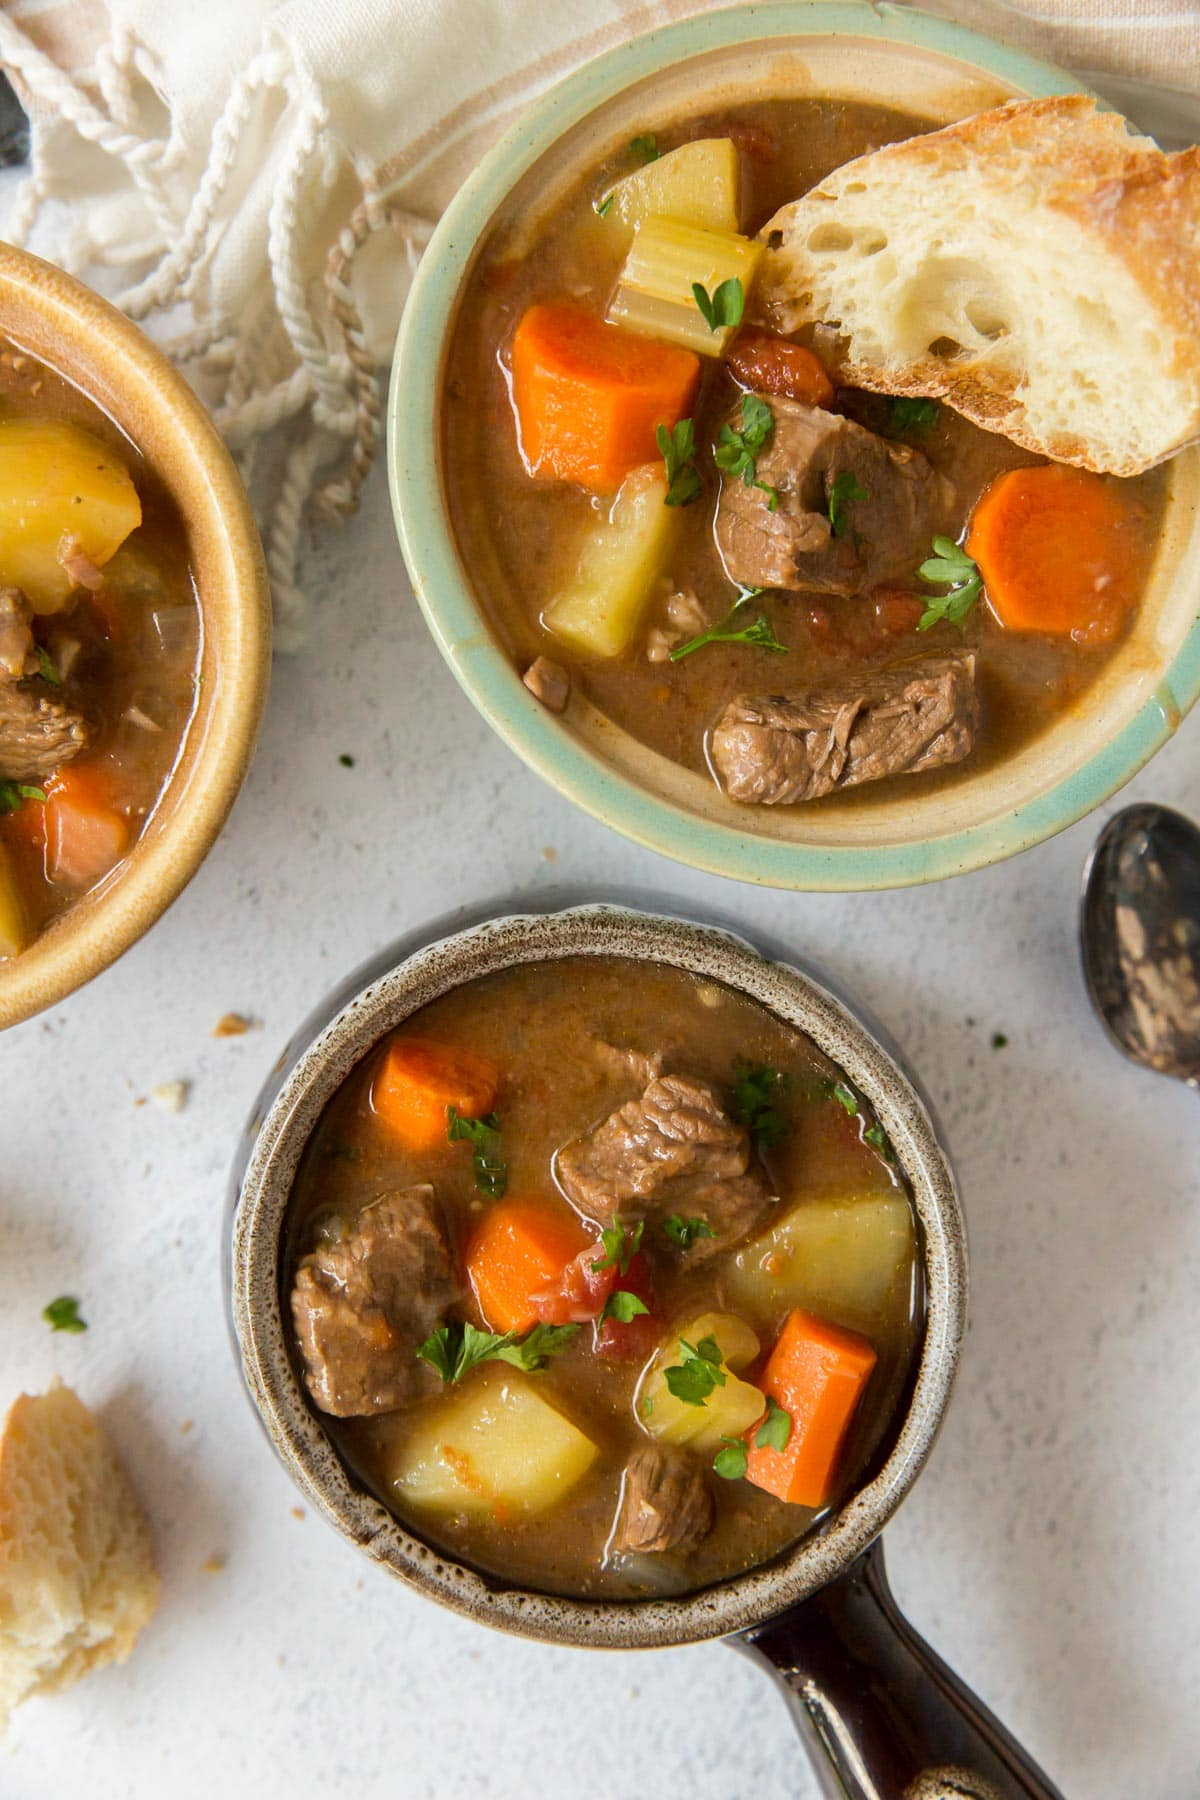 bowls with beef stea, white napkin, spoon, bread